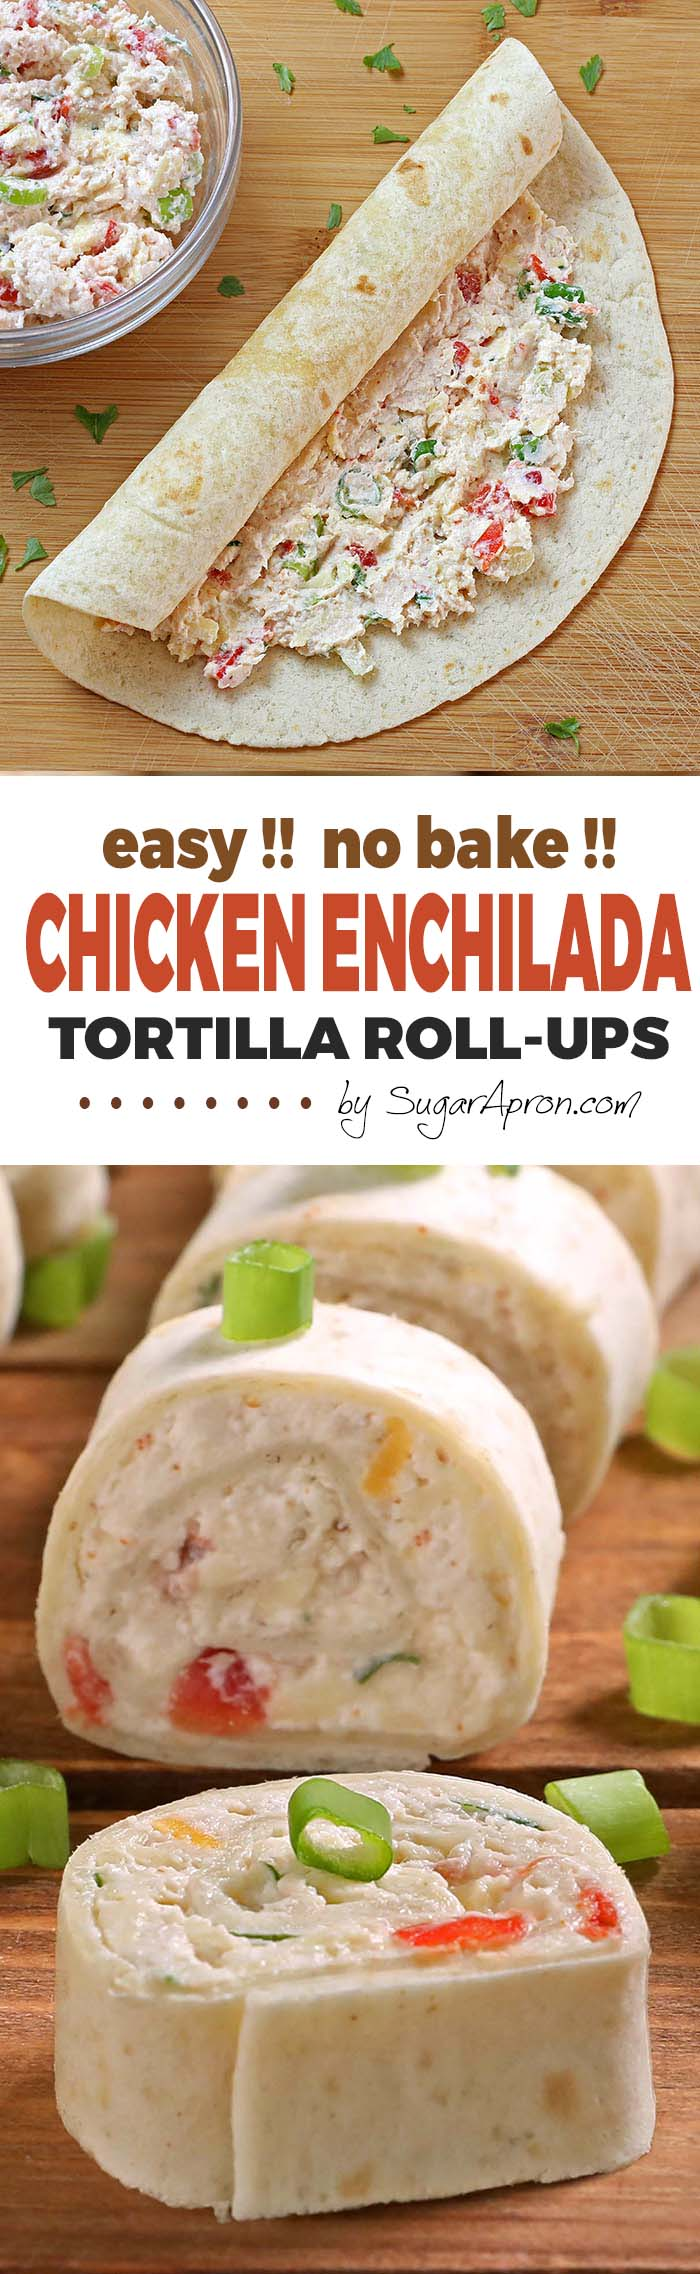 Chicken Enchilada Tortilla Roll Ups are a simple and fun bite sized spin on ever popular chicken enchiladas! A great appetizer recipe, easy to make ahead, easy to serve, perfect for game day party !